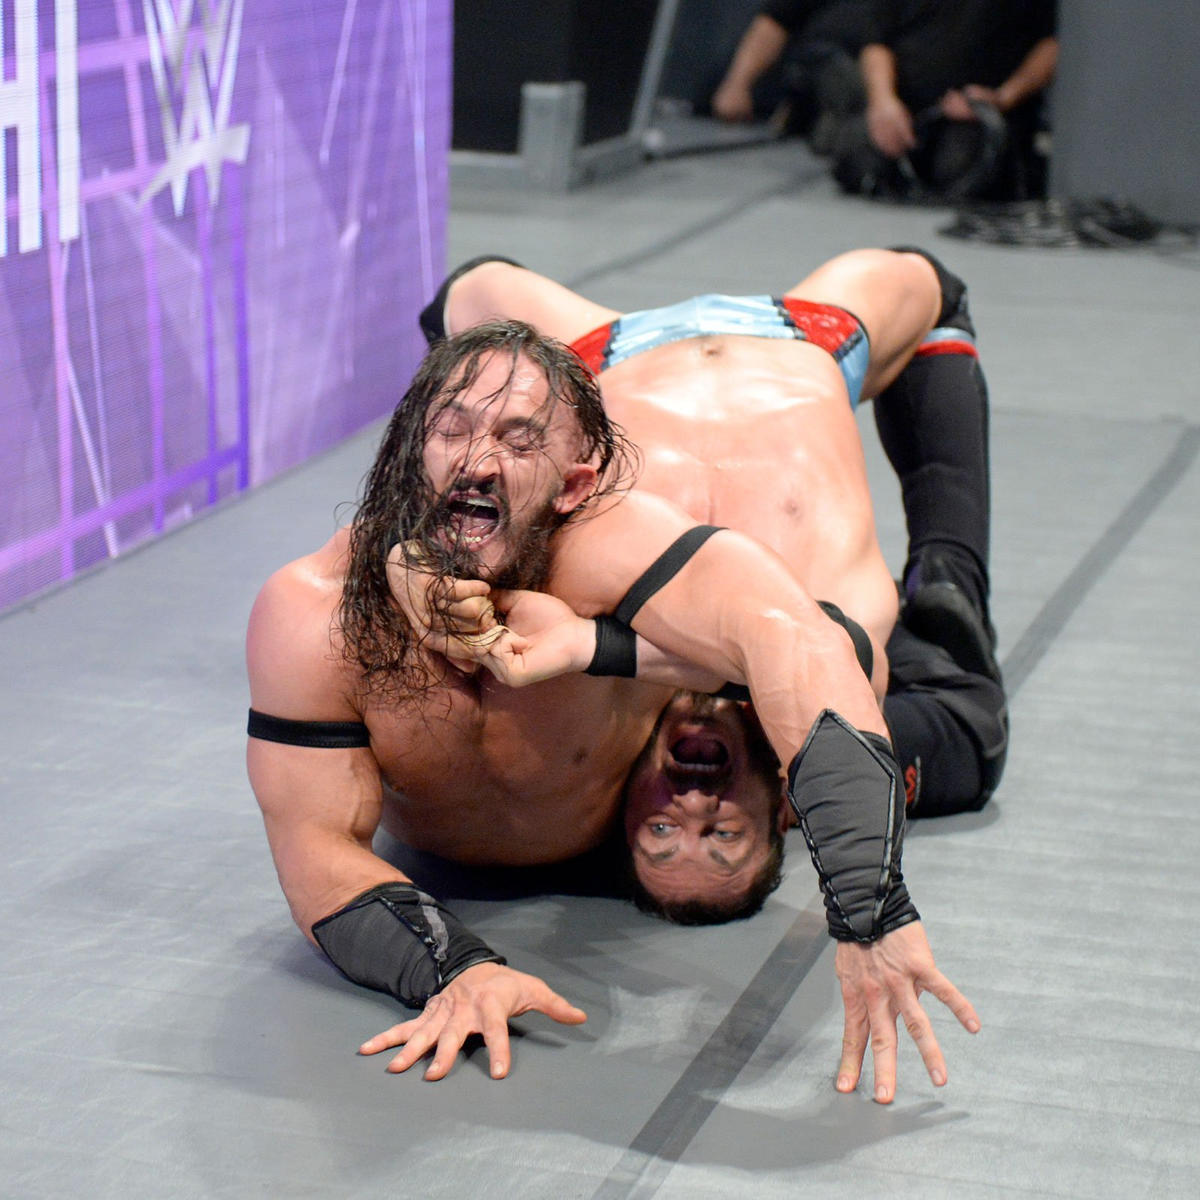 Neville taps out to The Last Chancery, but escapes defeat because Aries must win in the ring.